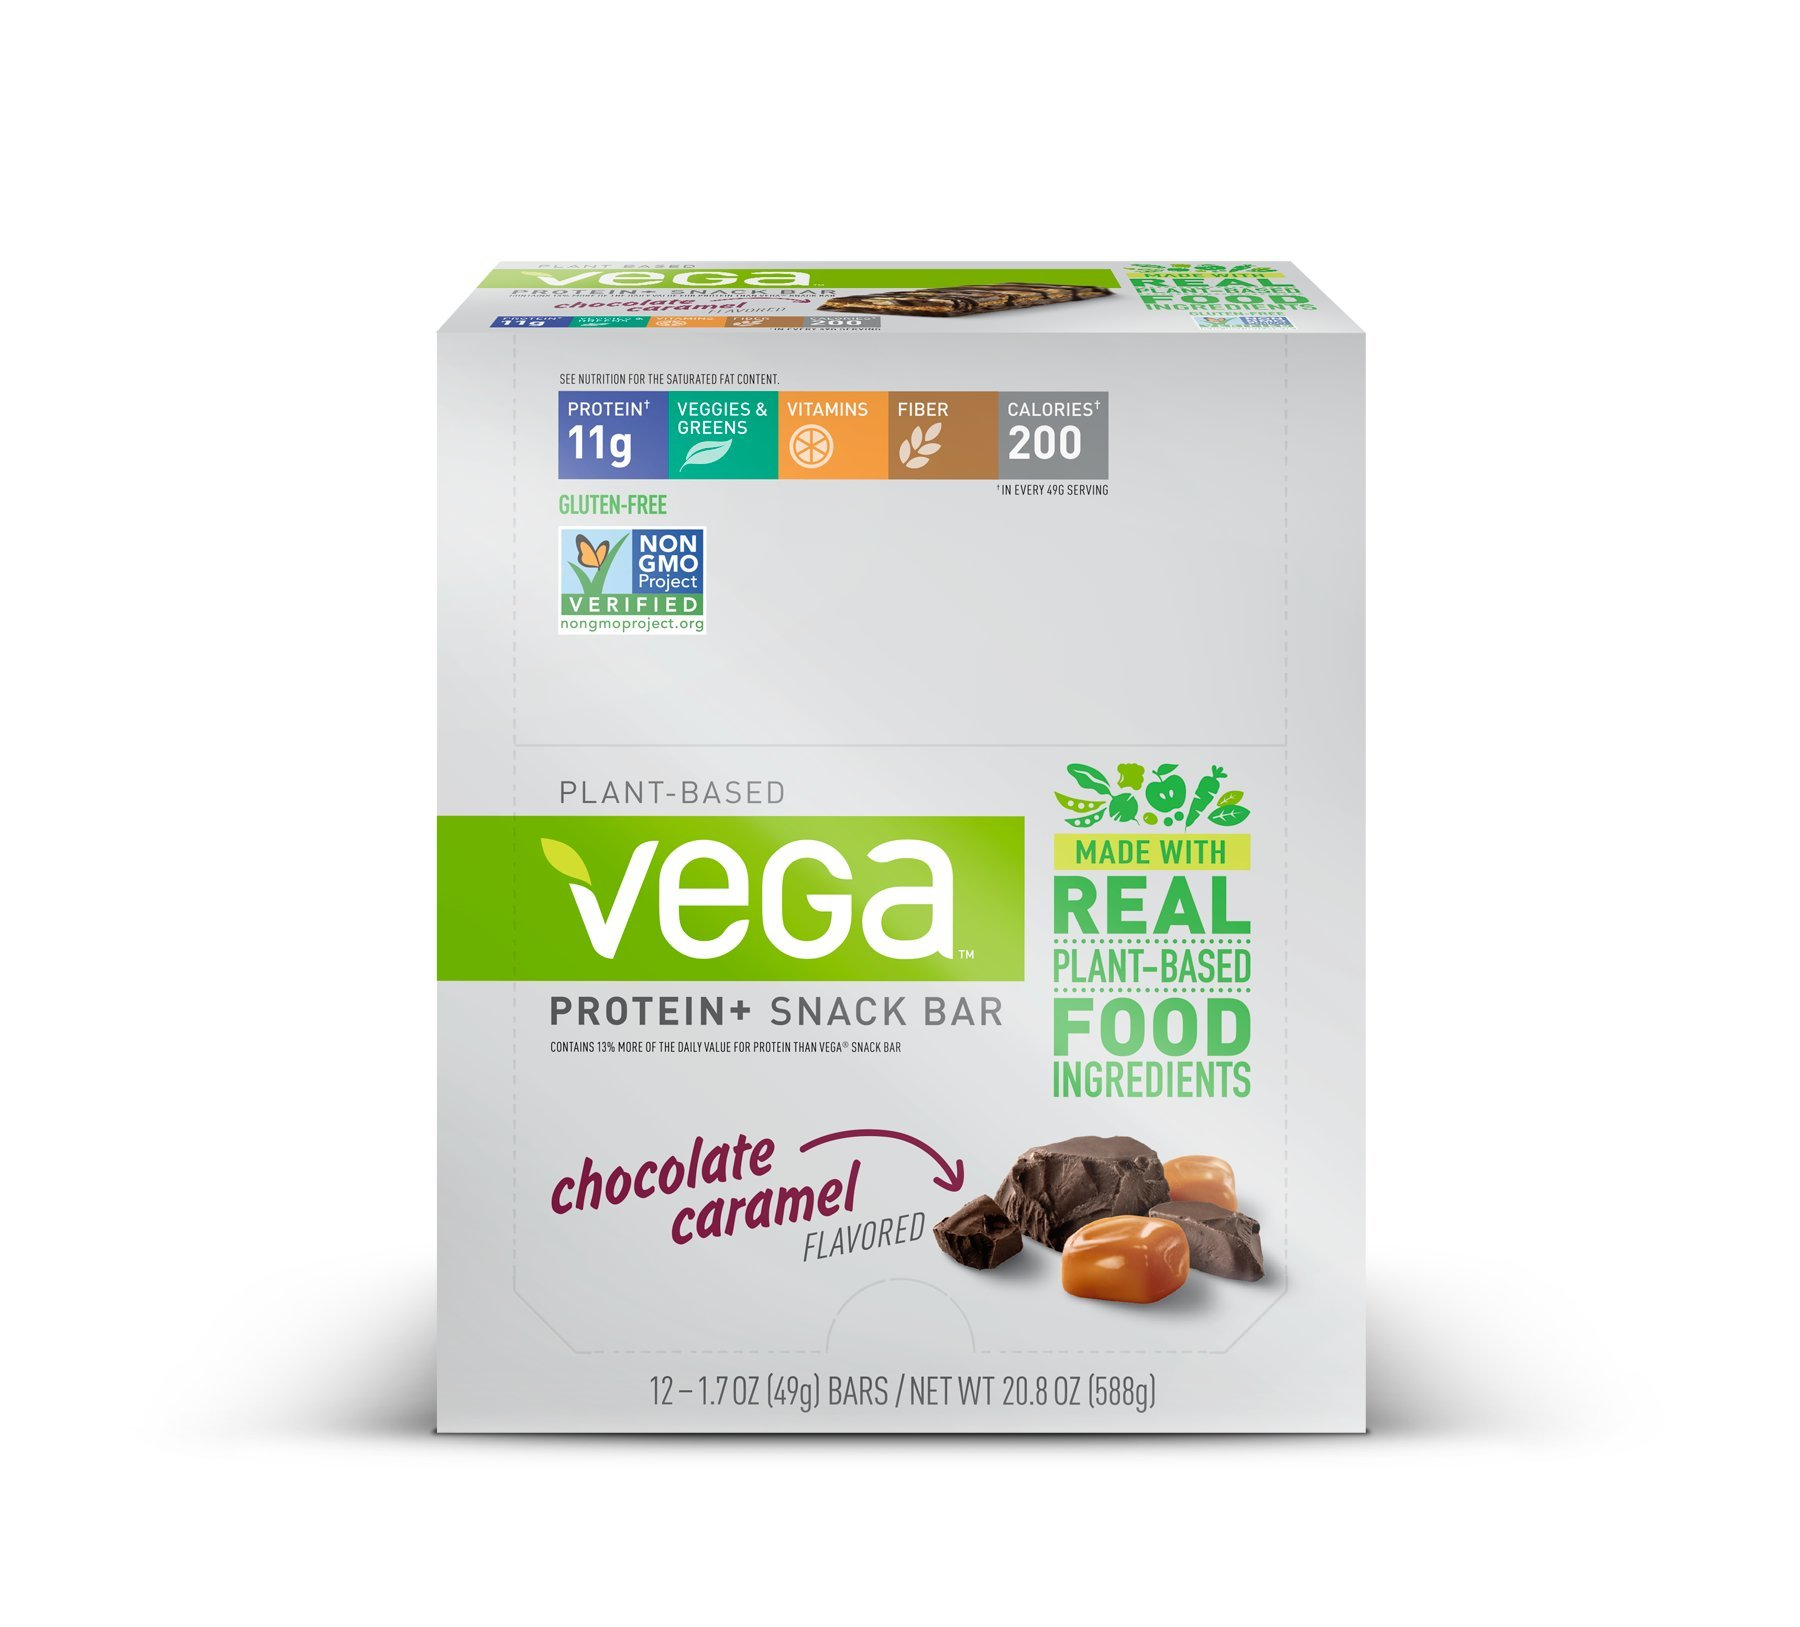 Vega Protein+ Snack Bars Gluten Free, Chocolate Caramel, 1.7oz, 12 Count